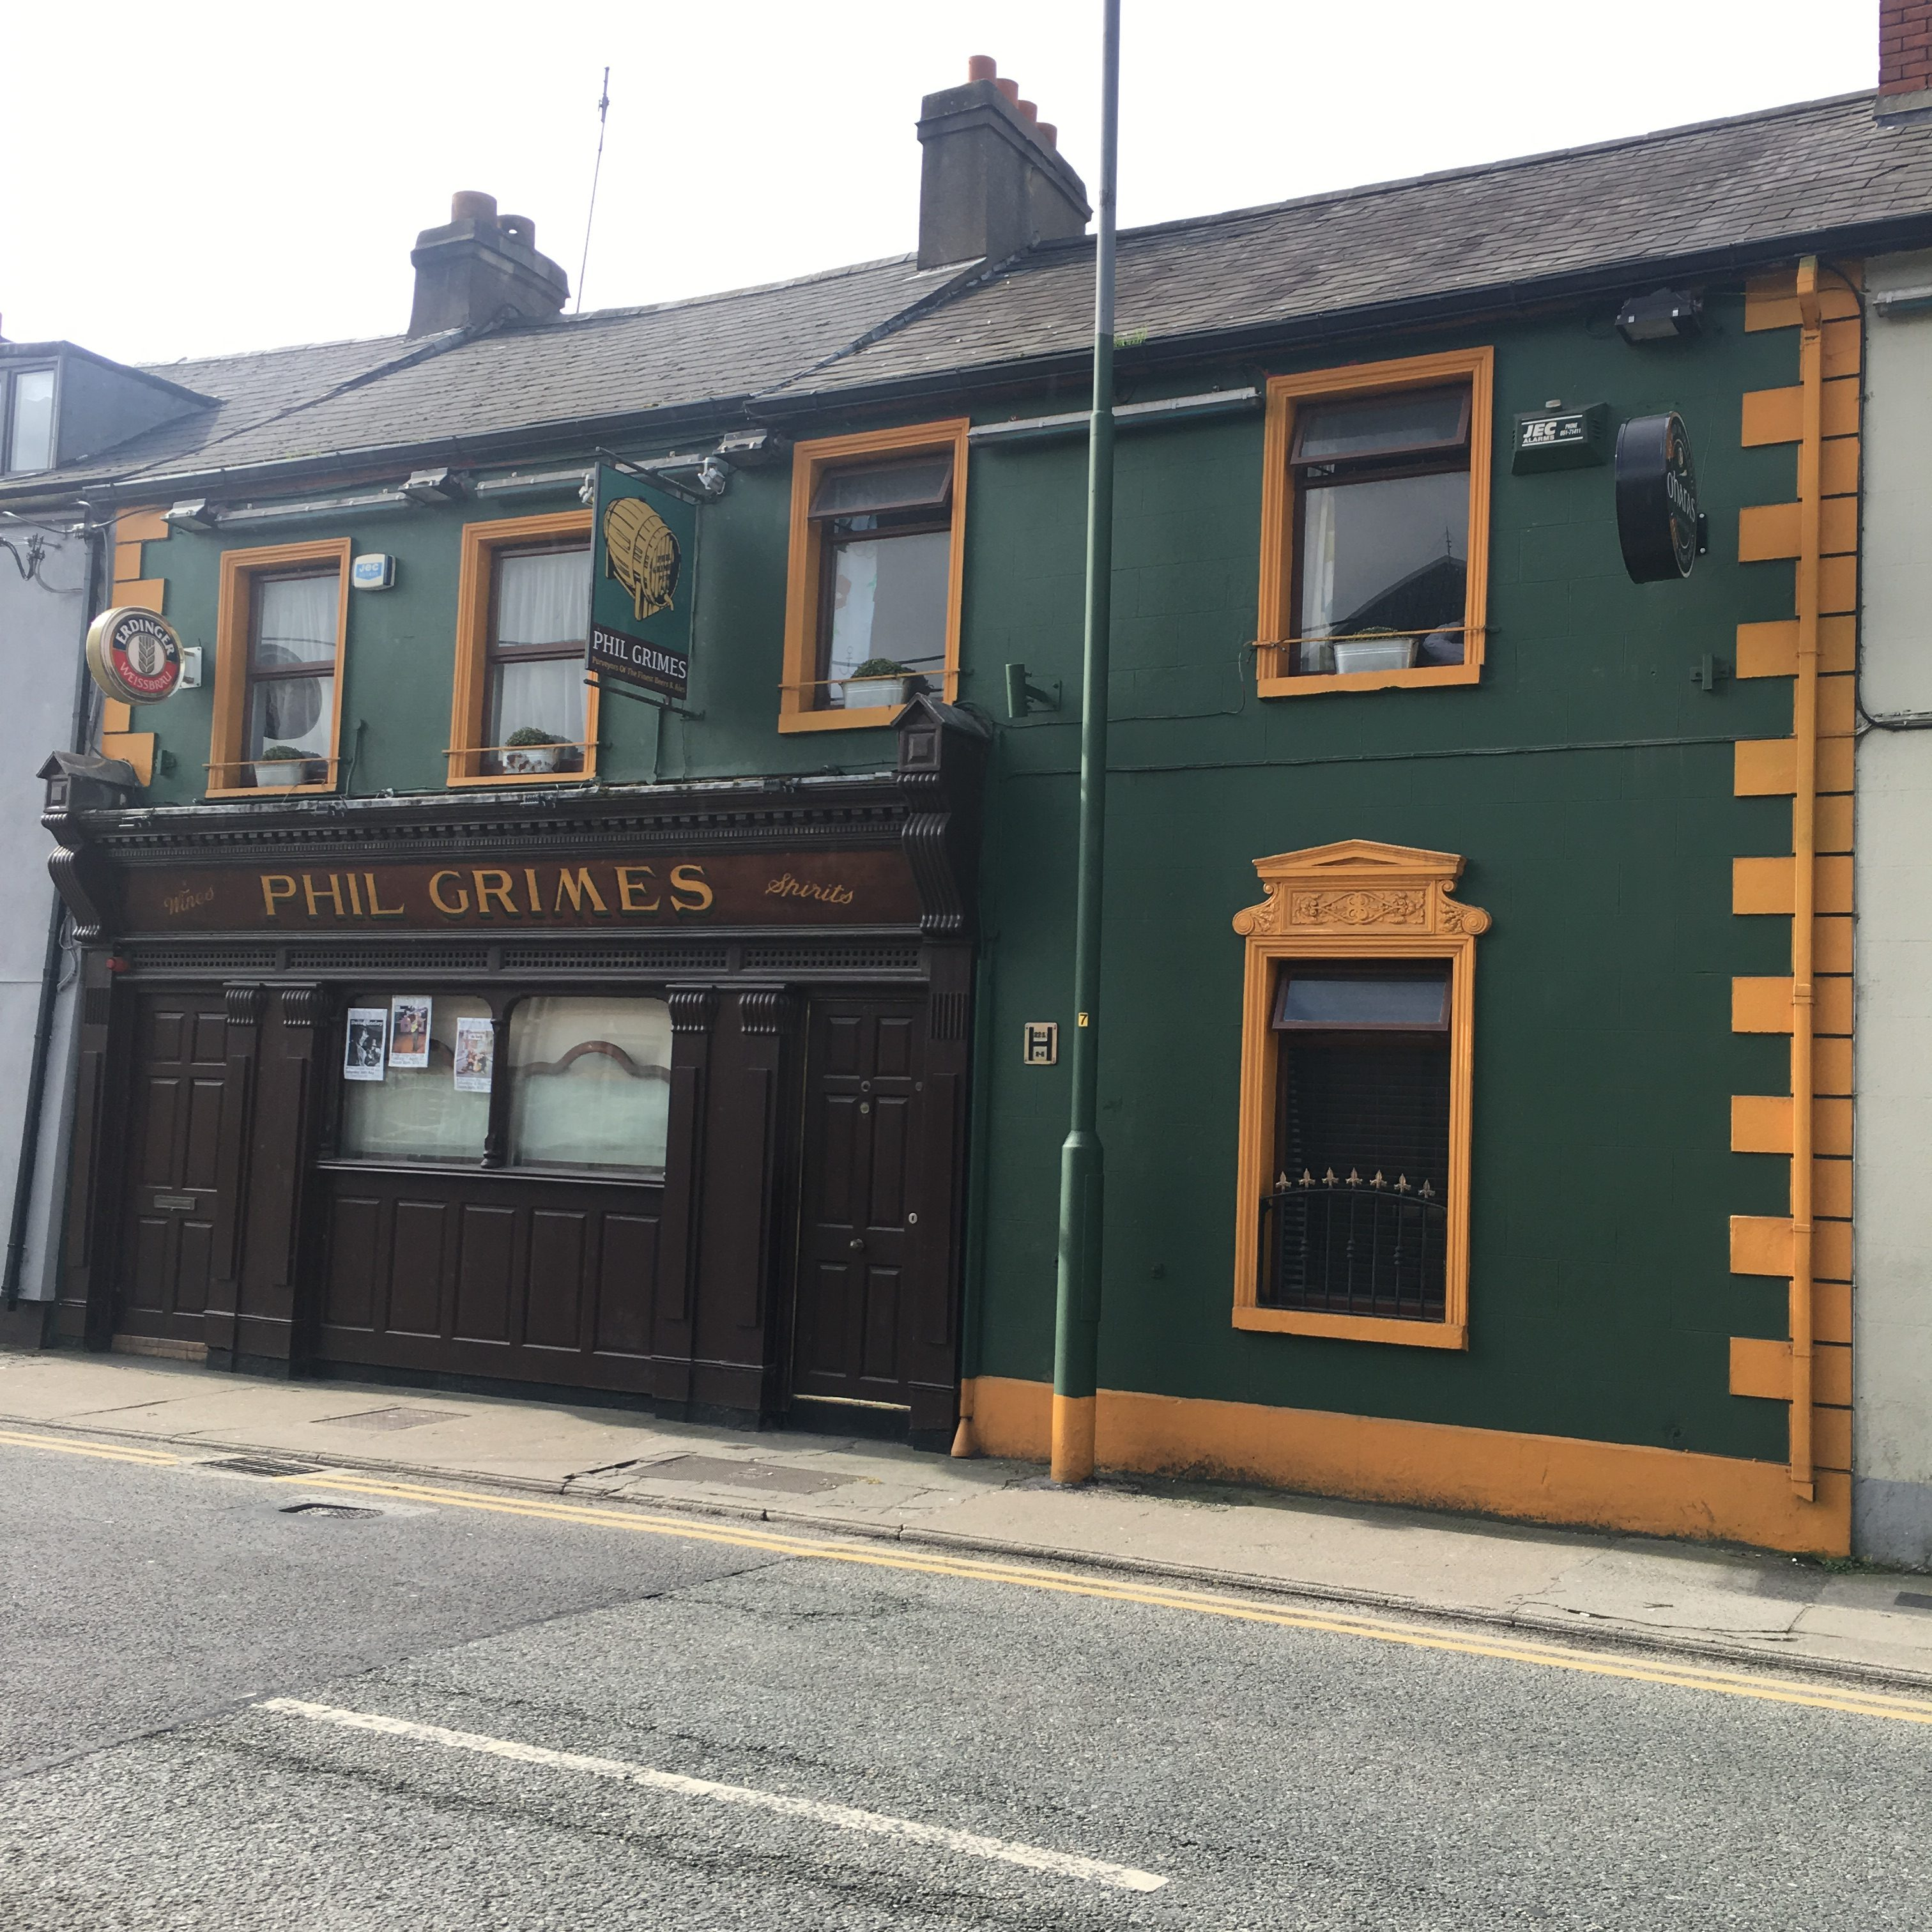 Phil Grimes Pub, Waterford, Ireland